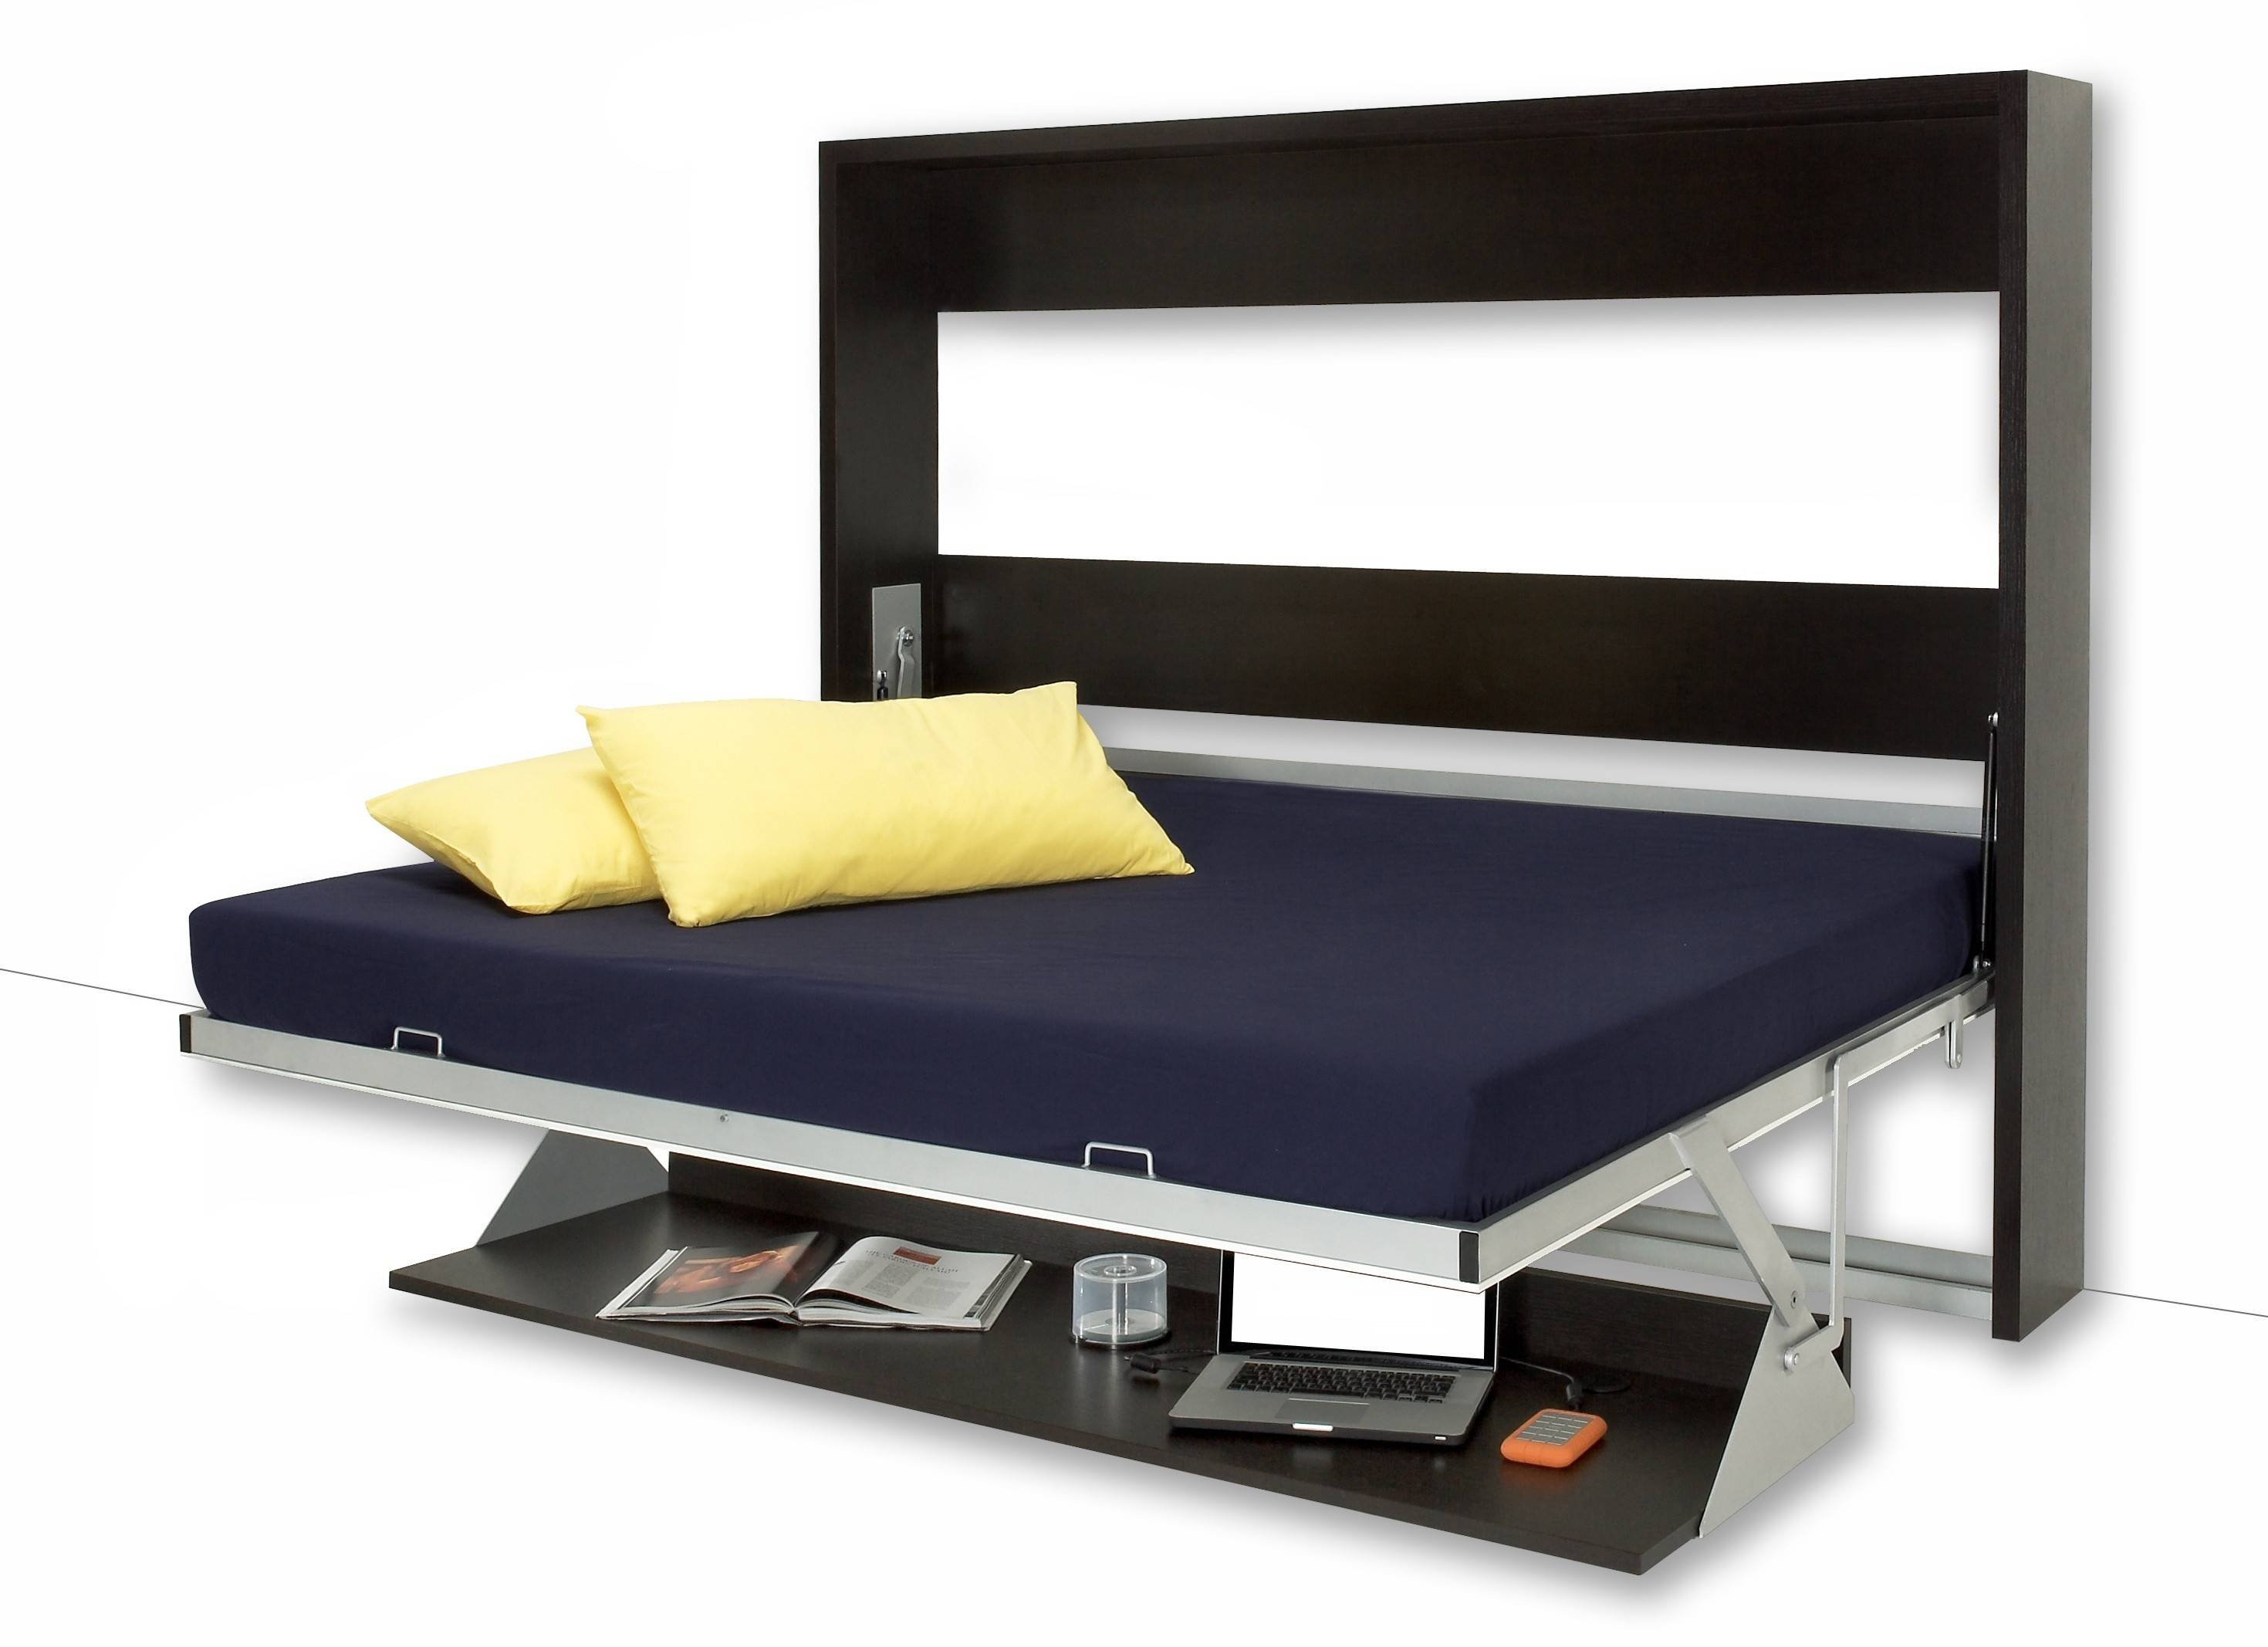 Desk Bed Seconds Double Horizontal Model Ref